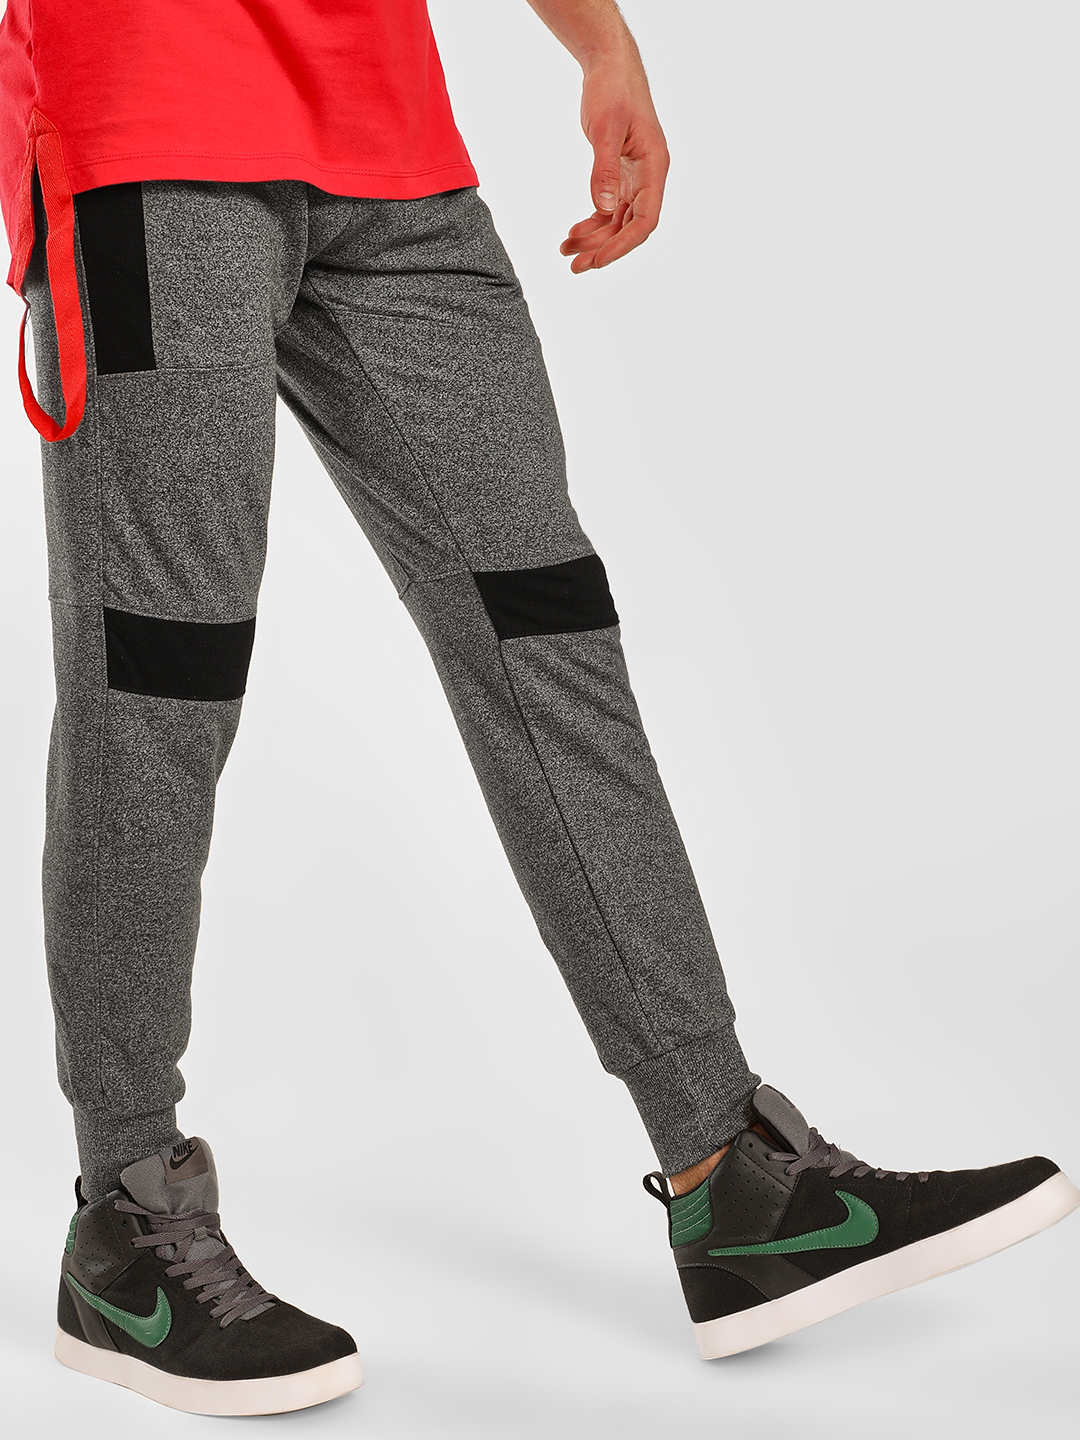 SKULT By Shahid Kapoor Green Textured Knit Panelled Joggers 1